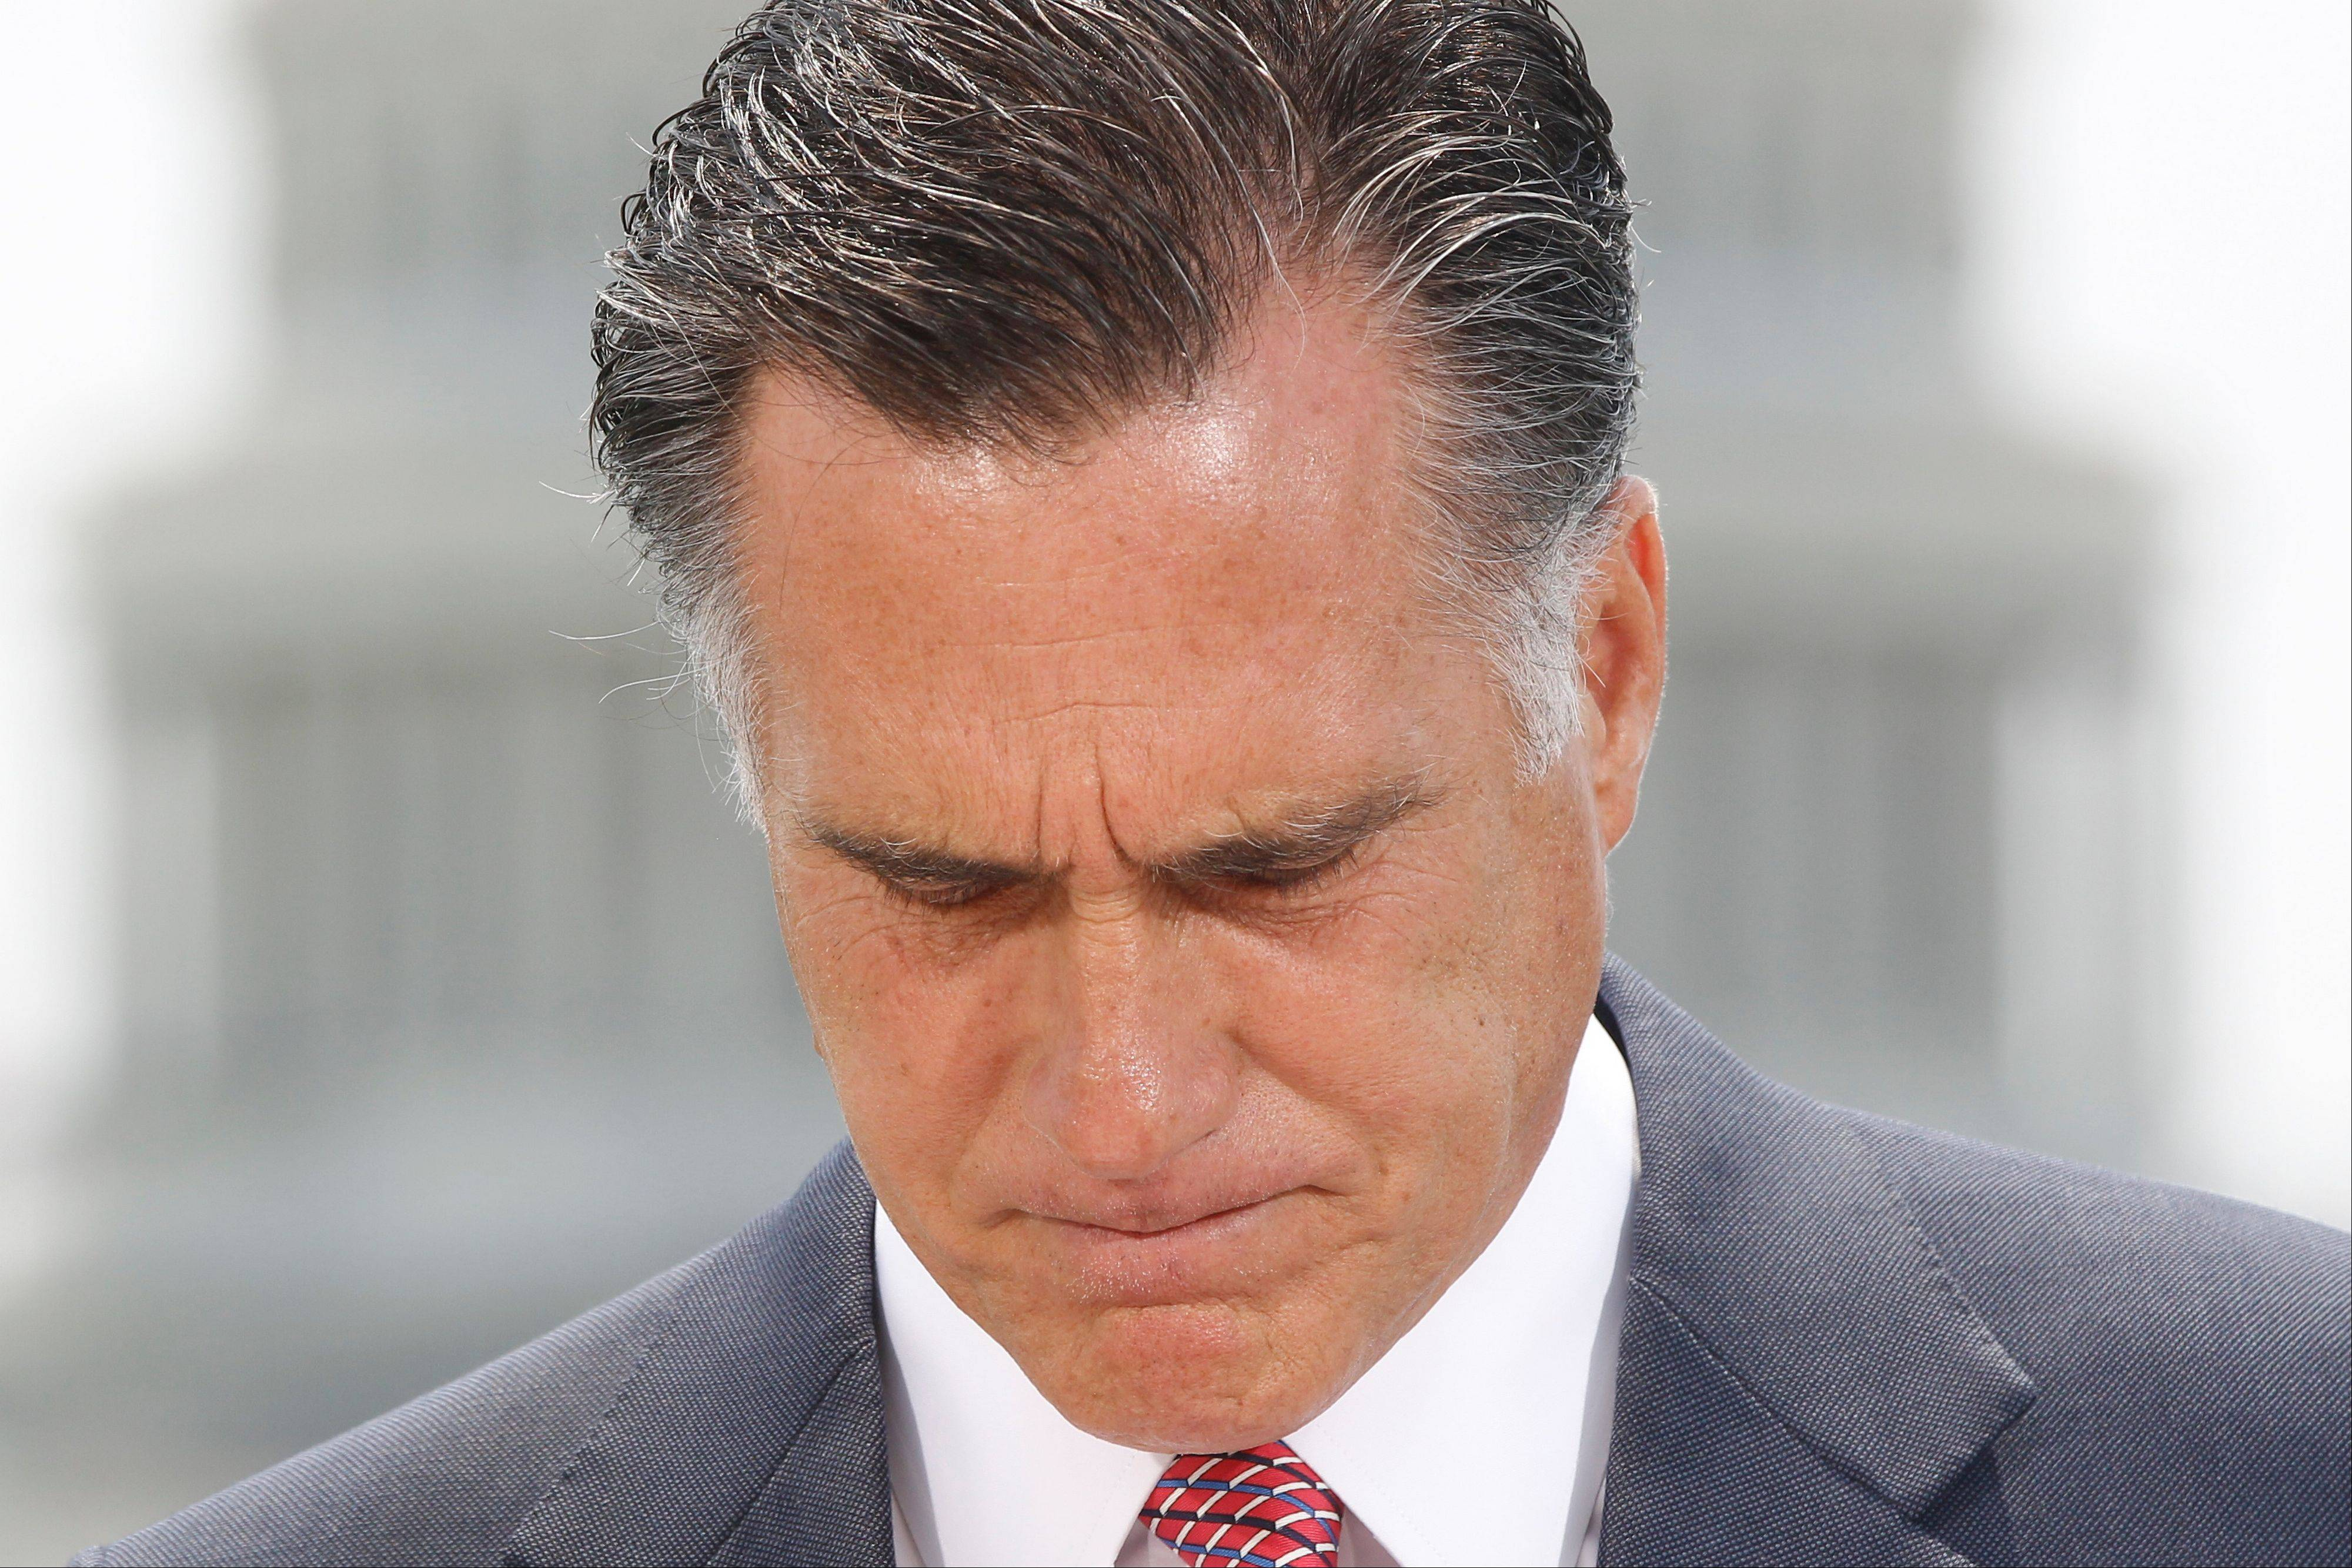 Romney response to Supreme Court on health care